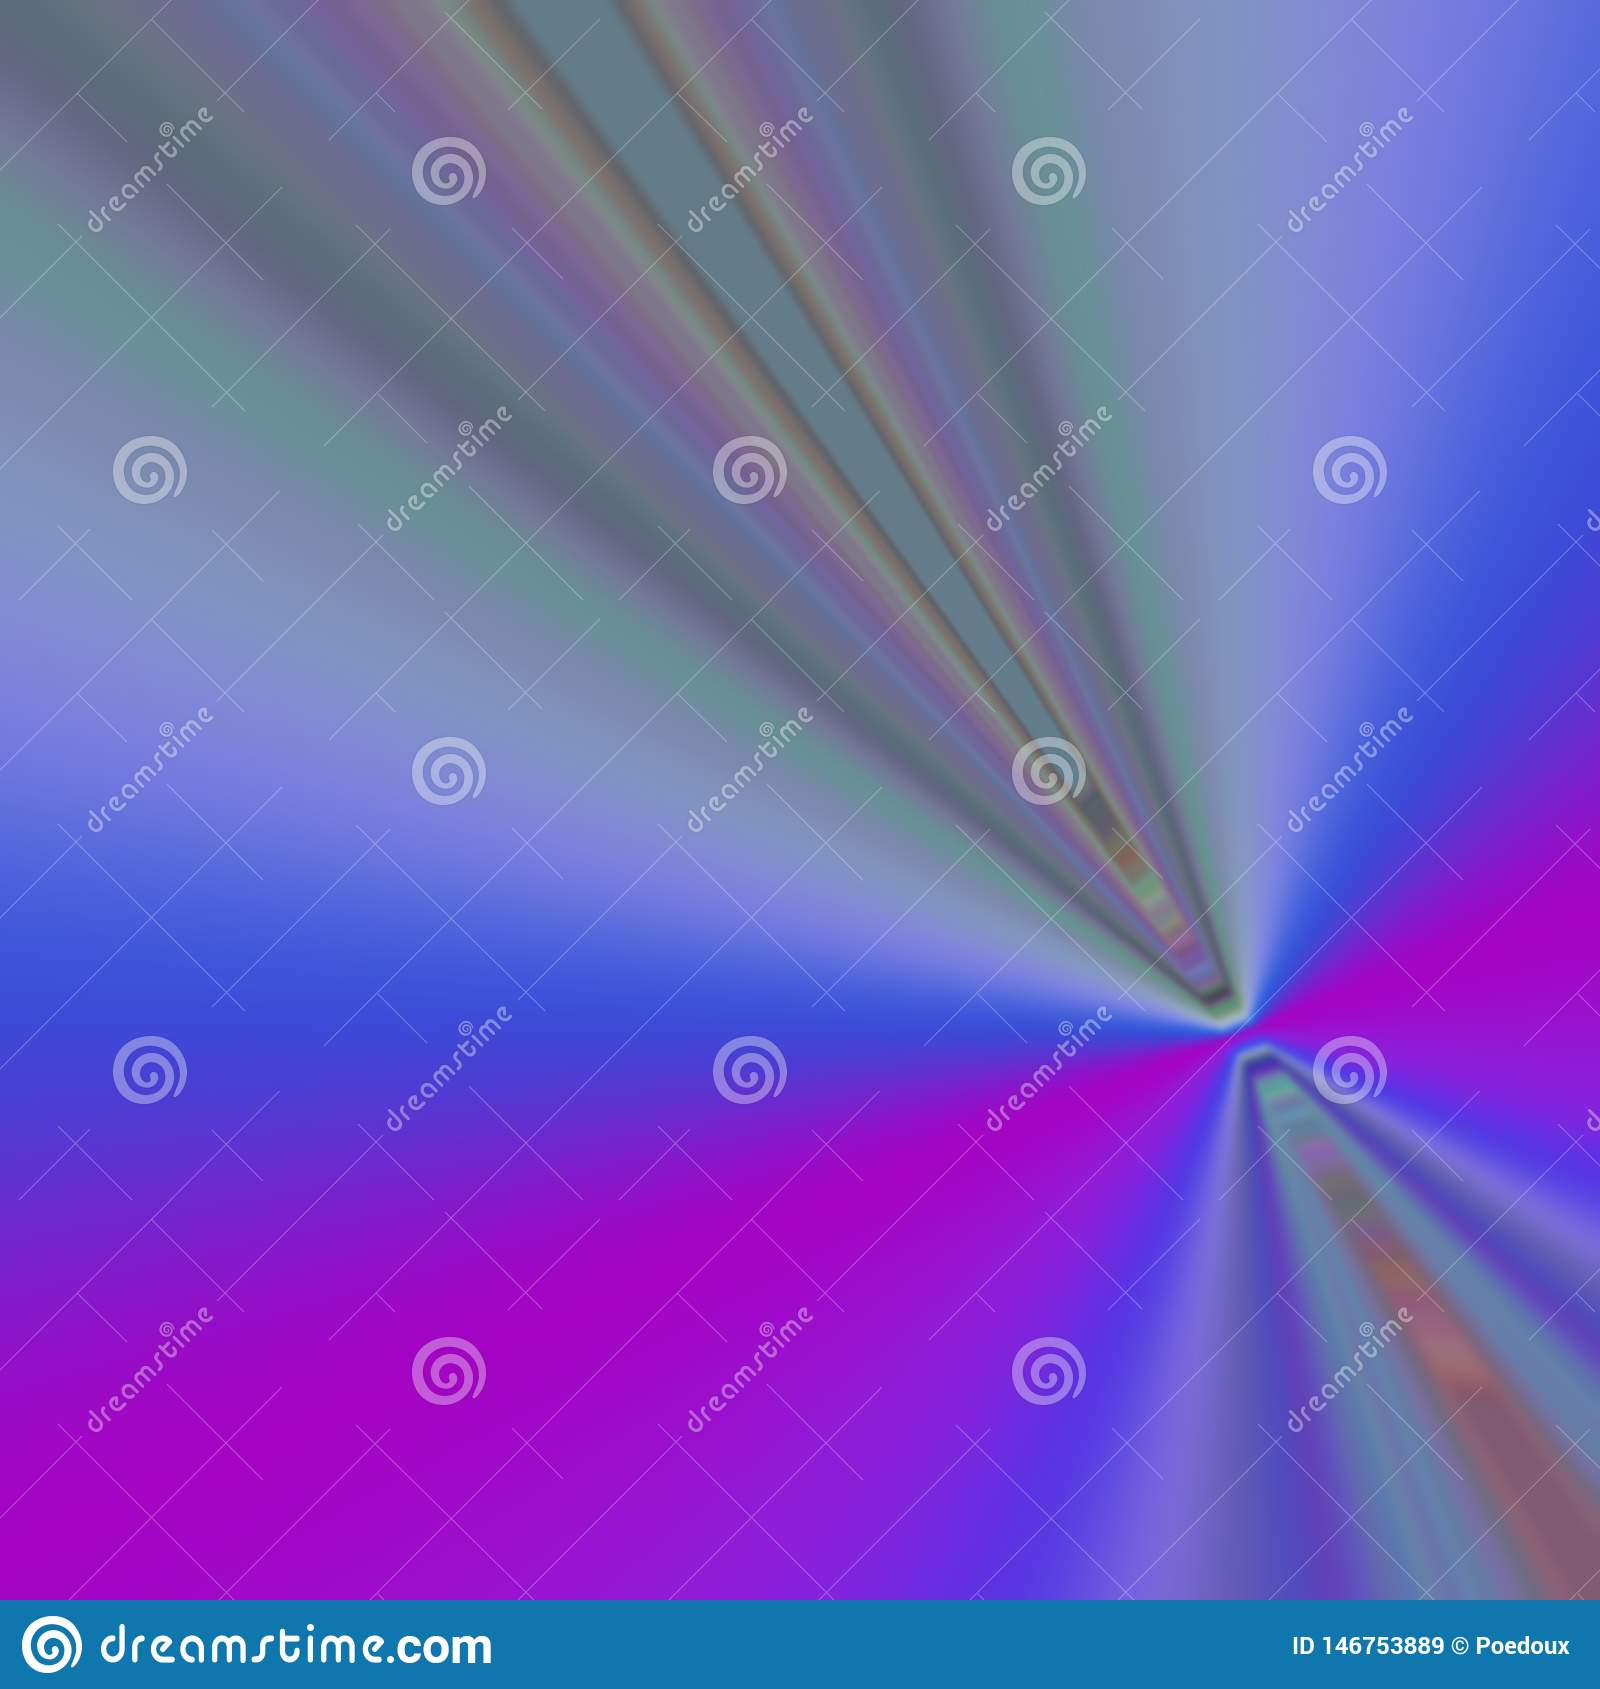 abstracts colordream: background with concentrics stripes